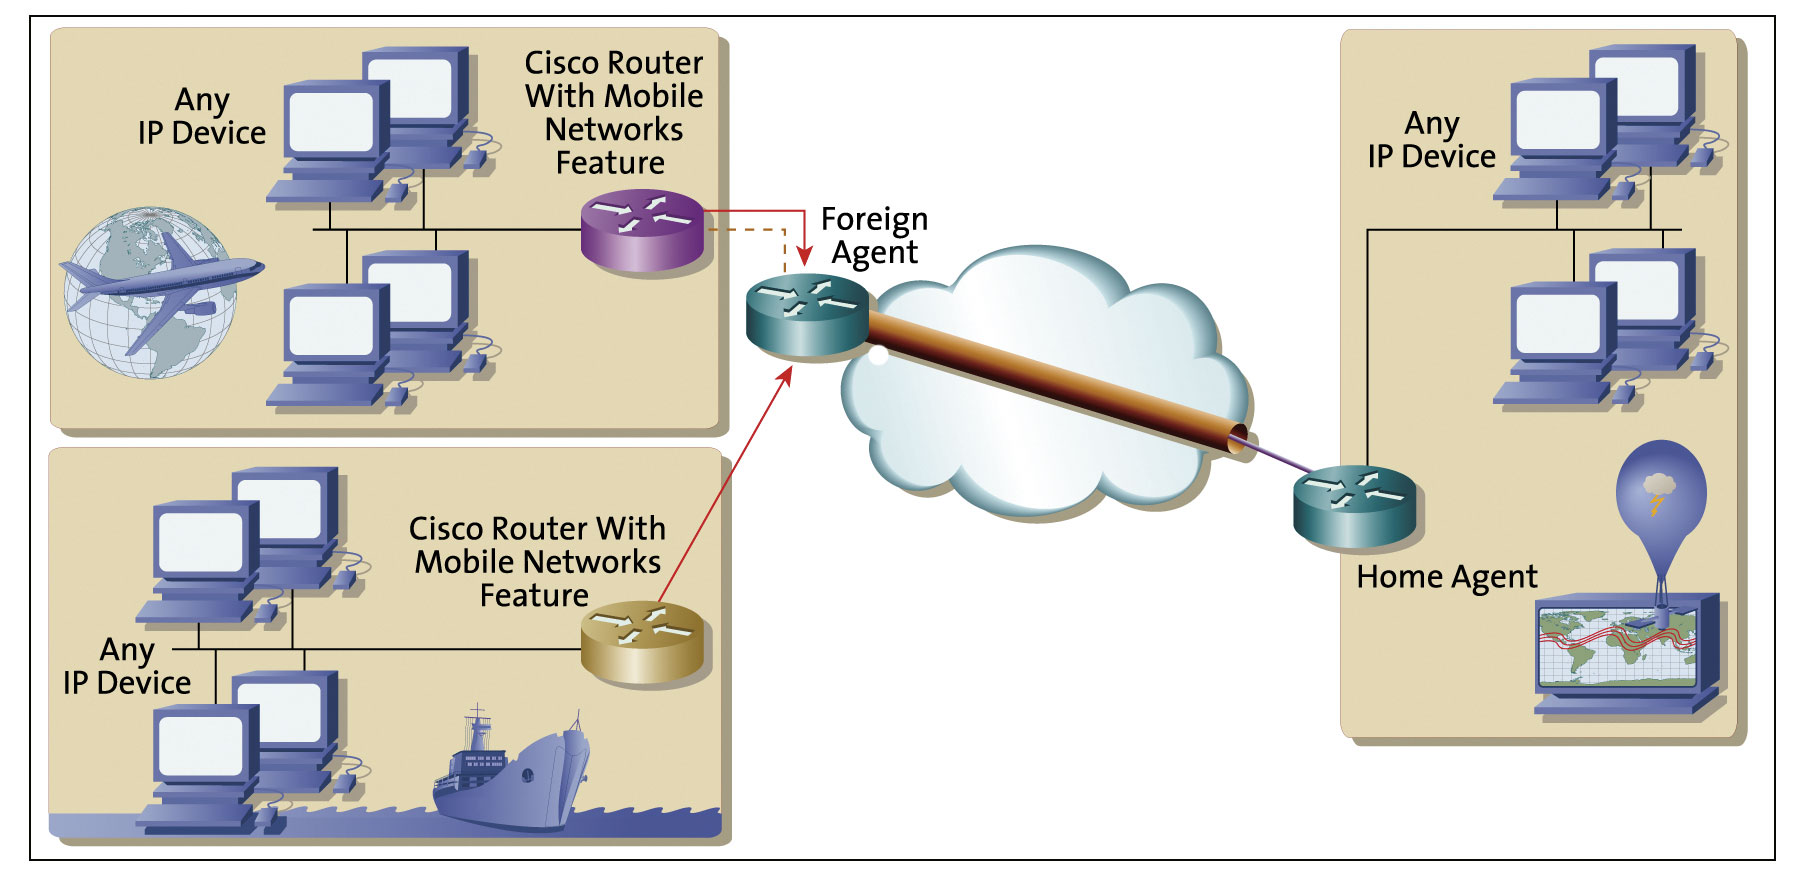 Continuously Connected With Mobile Ip Cisco Router Diagram The Maintains Connections Across Boundaries